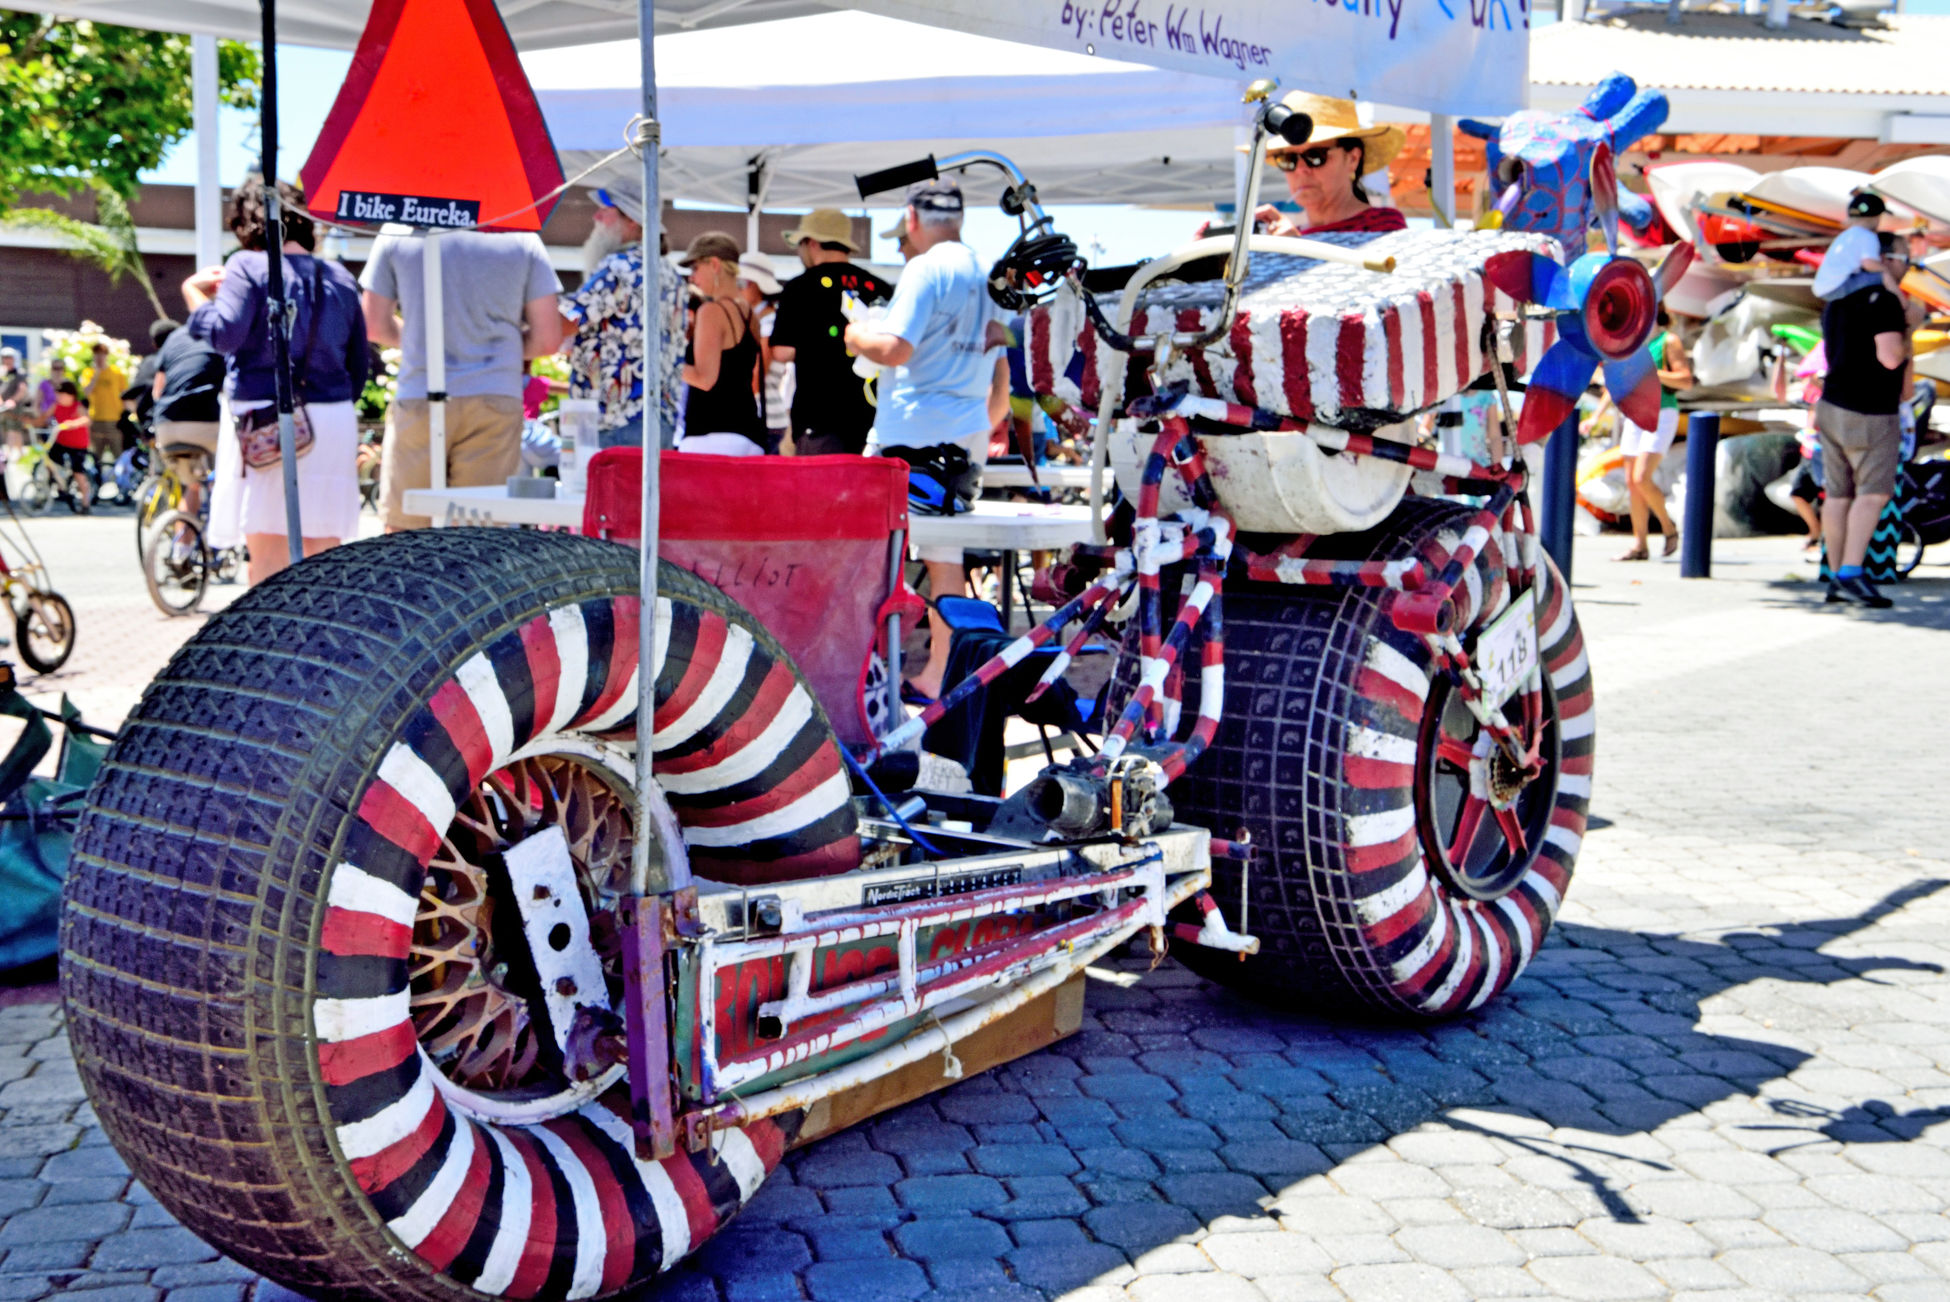 Bikes Of All Types 4 Peddle Fest @ Jack London Square Oakland, Ca. Festival Bicycles Bicycling Bikes Custom Bicycles Antique Bikes Kids Bikes Bikeporn Bicycle Heaven Have A Good Time Having Fun Having Fun With Photography People Watching Family Time